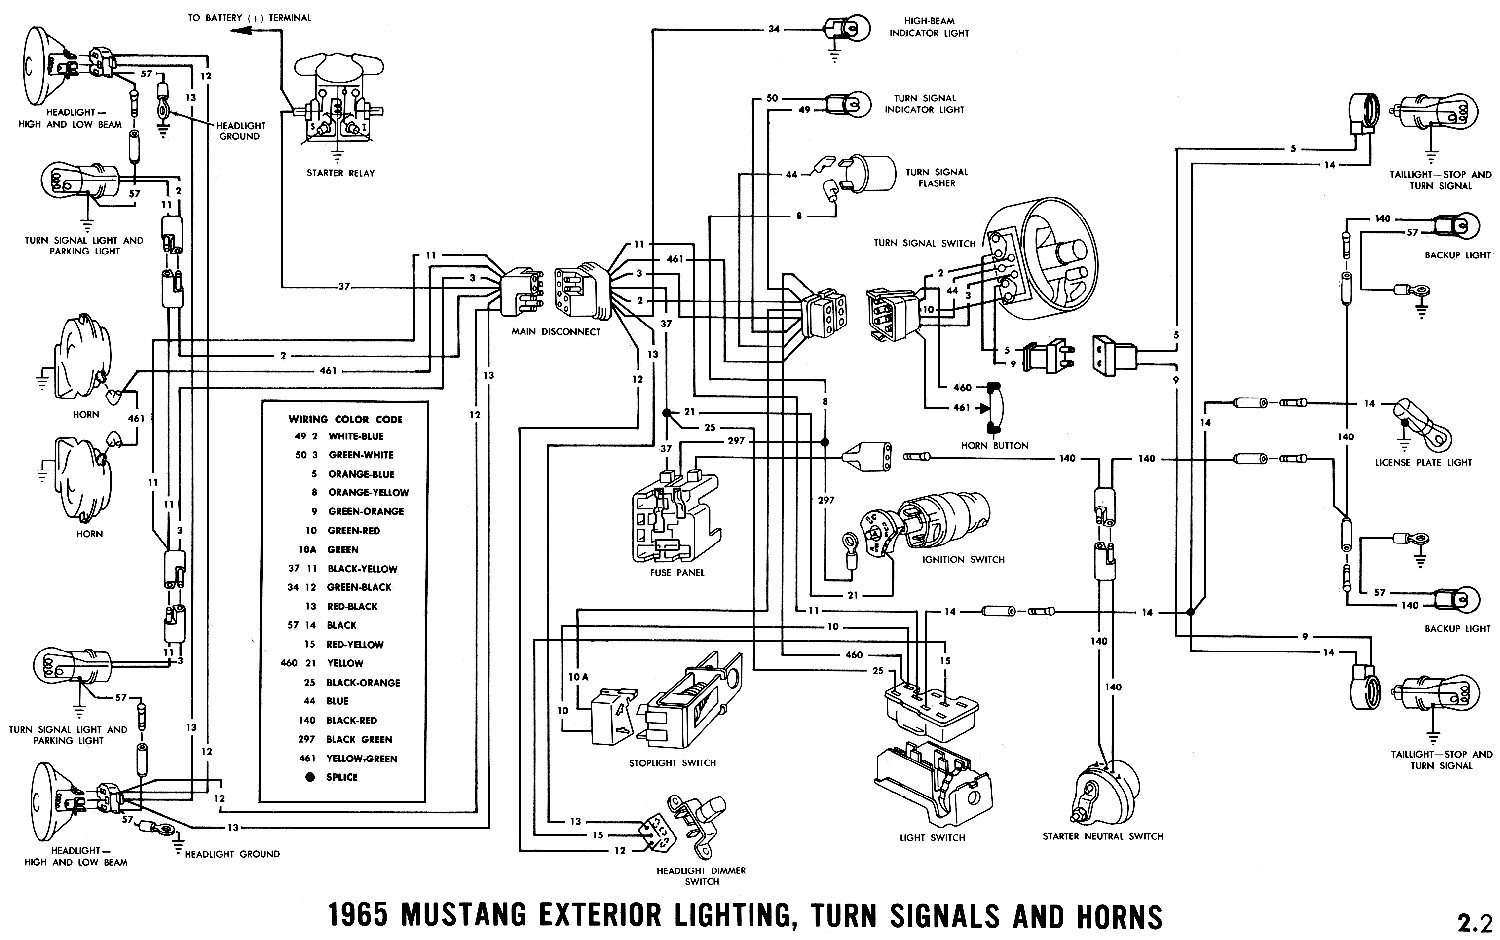 1965 Mustang Wiring Diagrams Average Joe Restoration Wire To Carry Both Signals Shown As The Blue In Diagram Headlamps